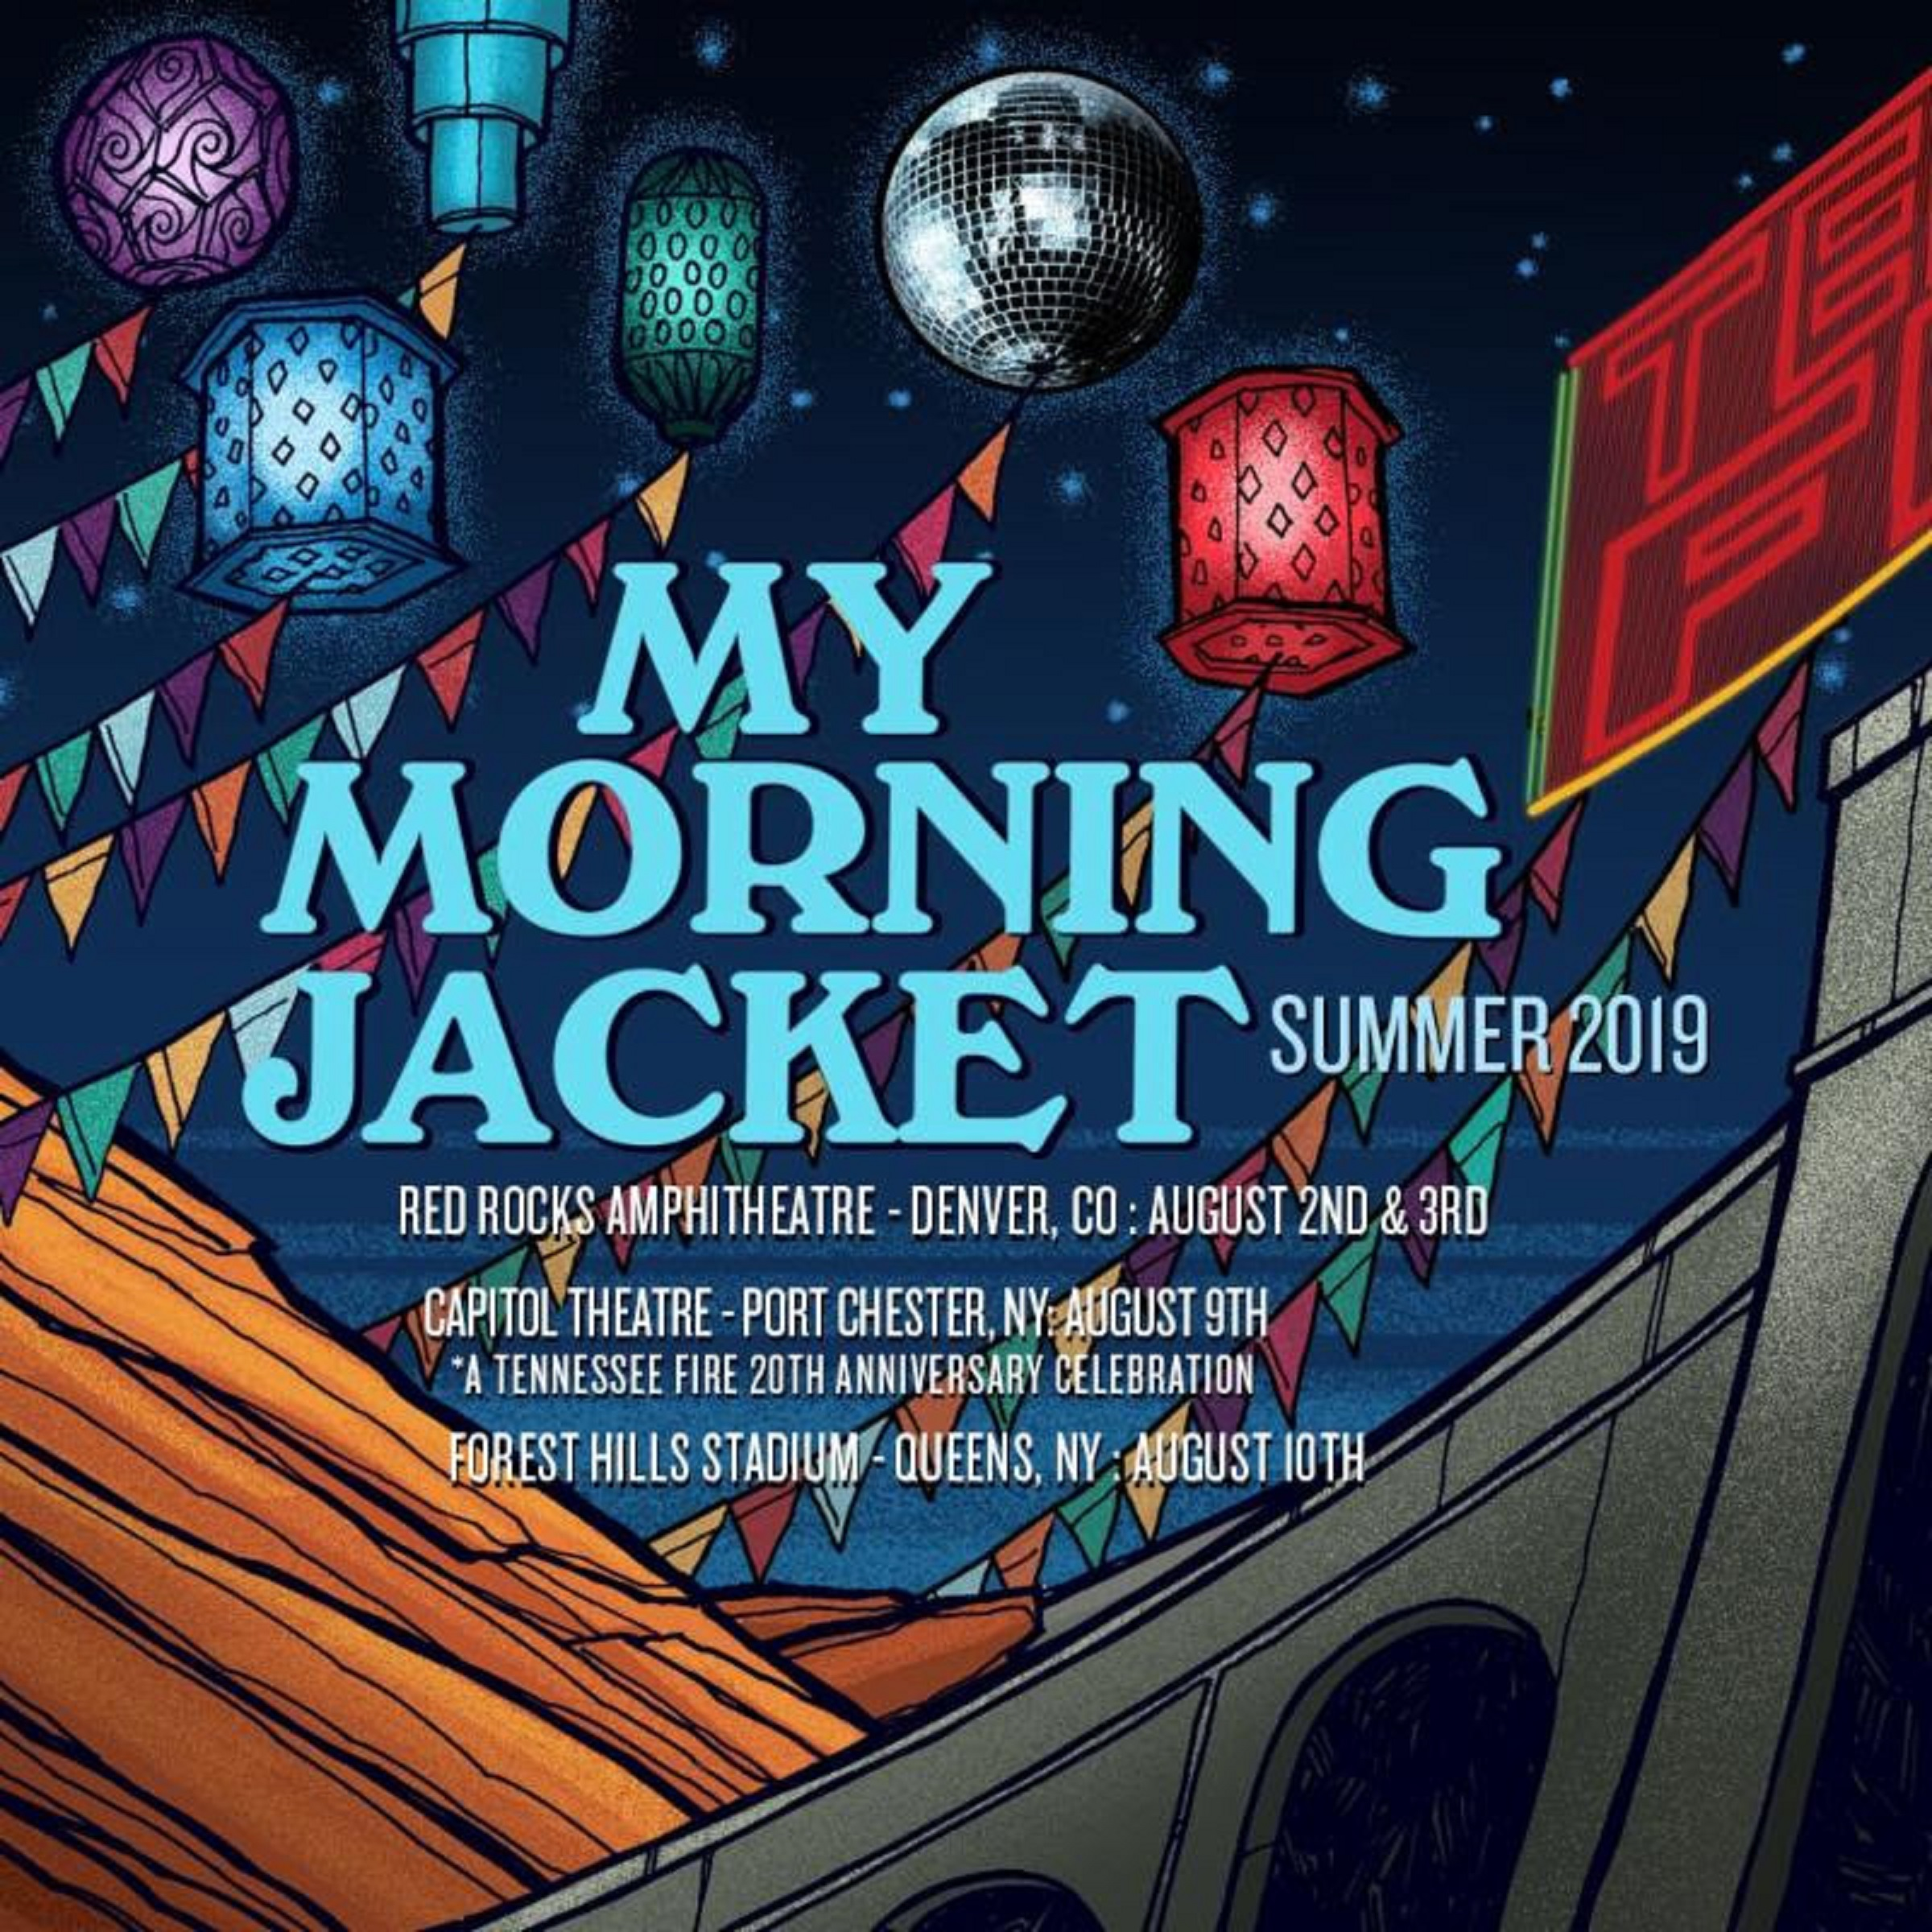 My Morning Jacket to release deluxe edition of first album